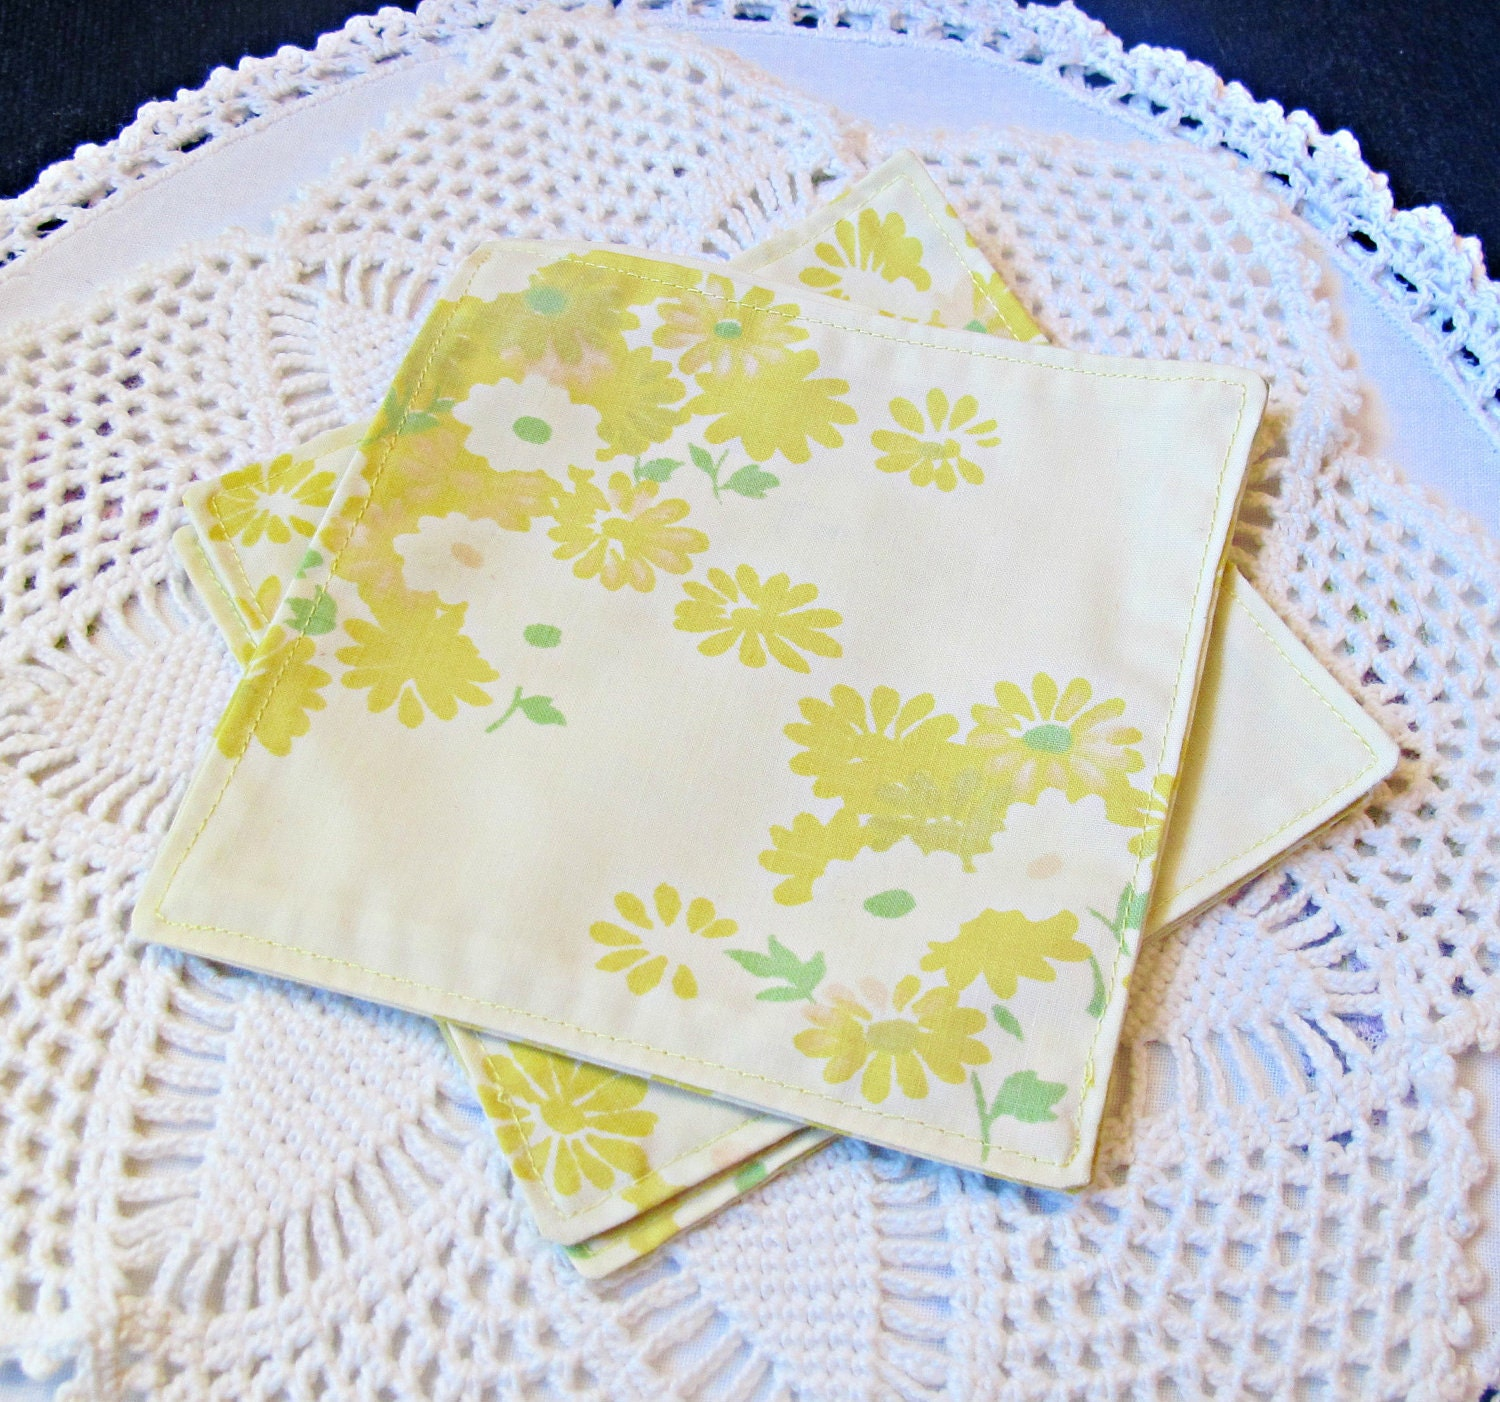 image cocktail napkins fabric reusable eco environmentally friendly yellow domum vindemia party